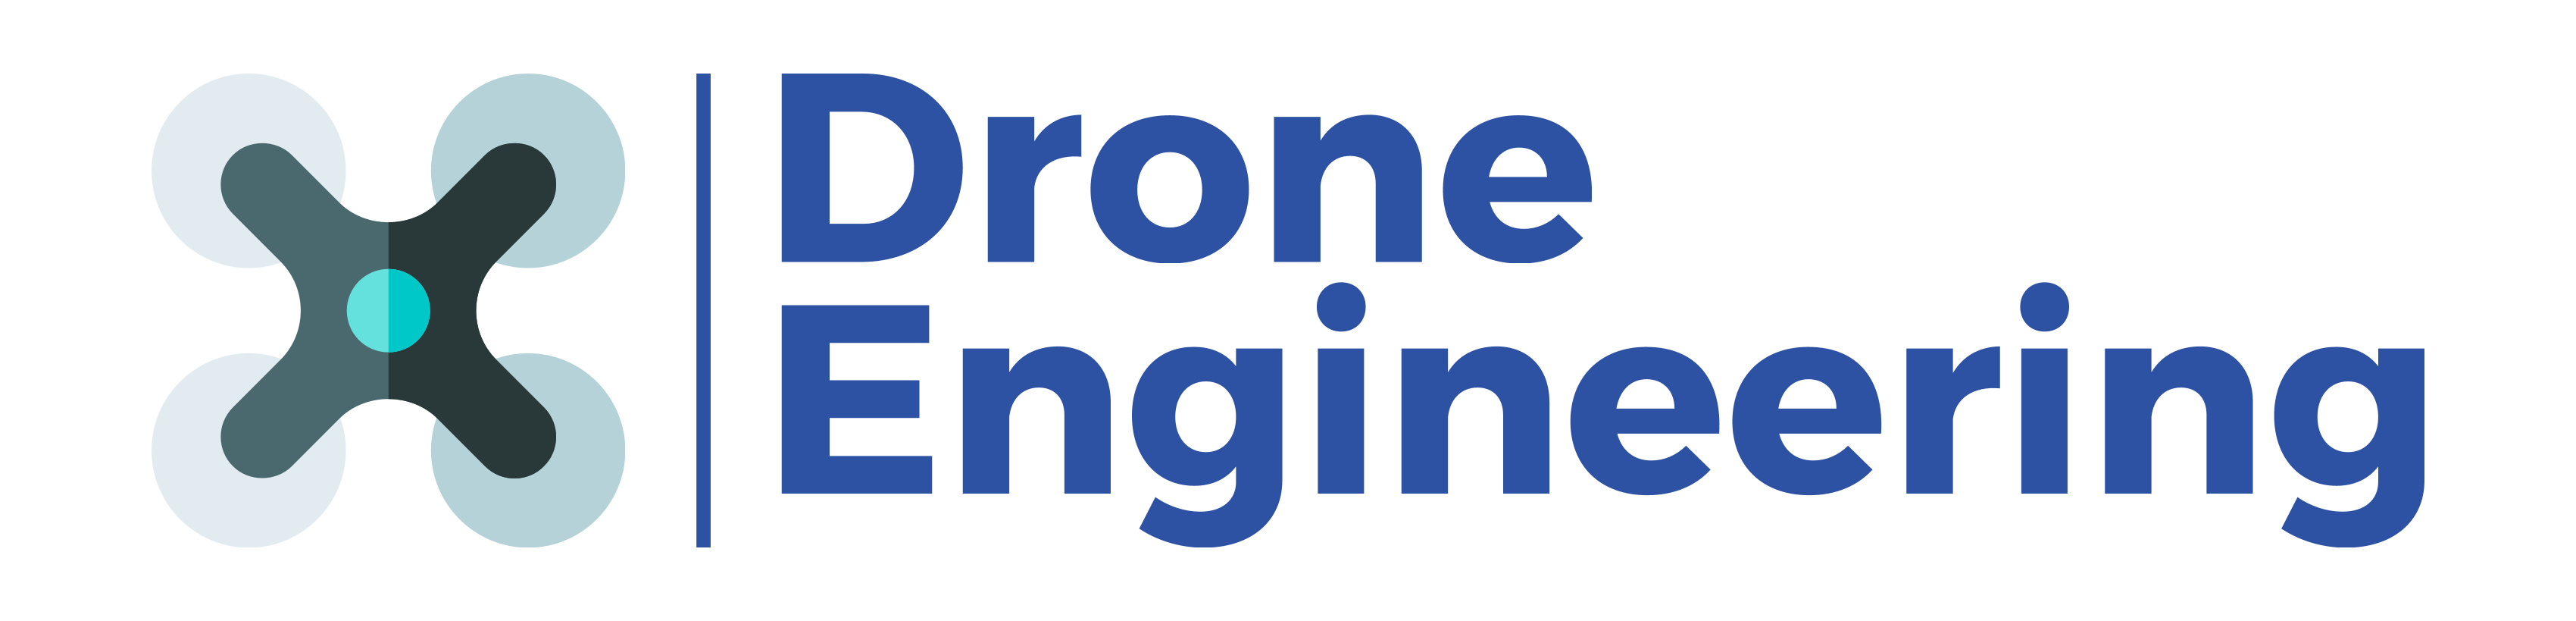 DRONE ENGINEERING